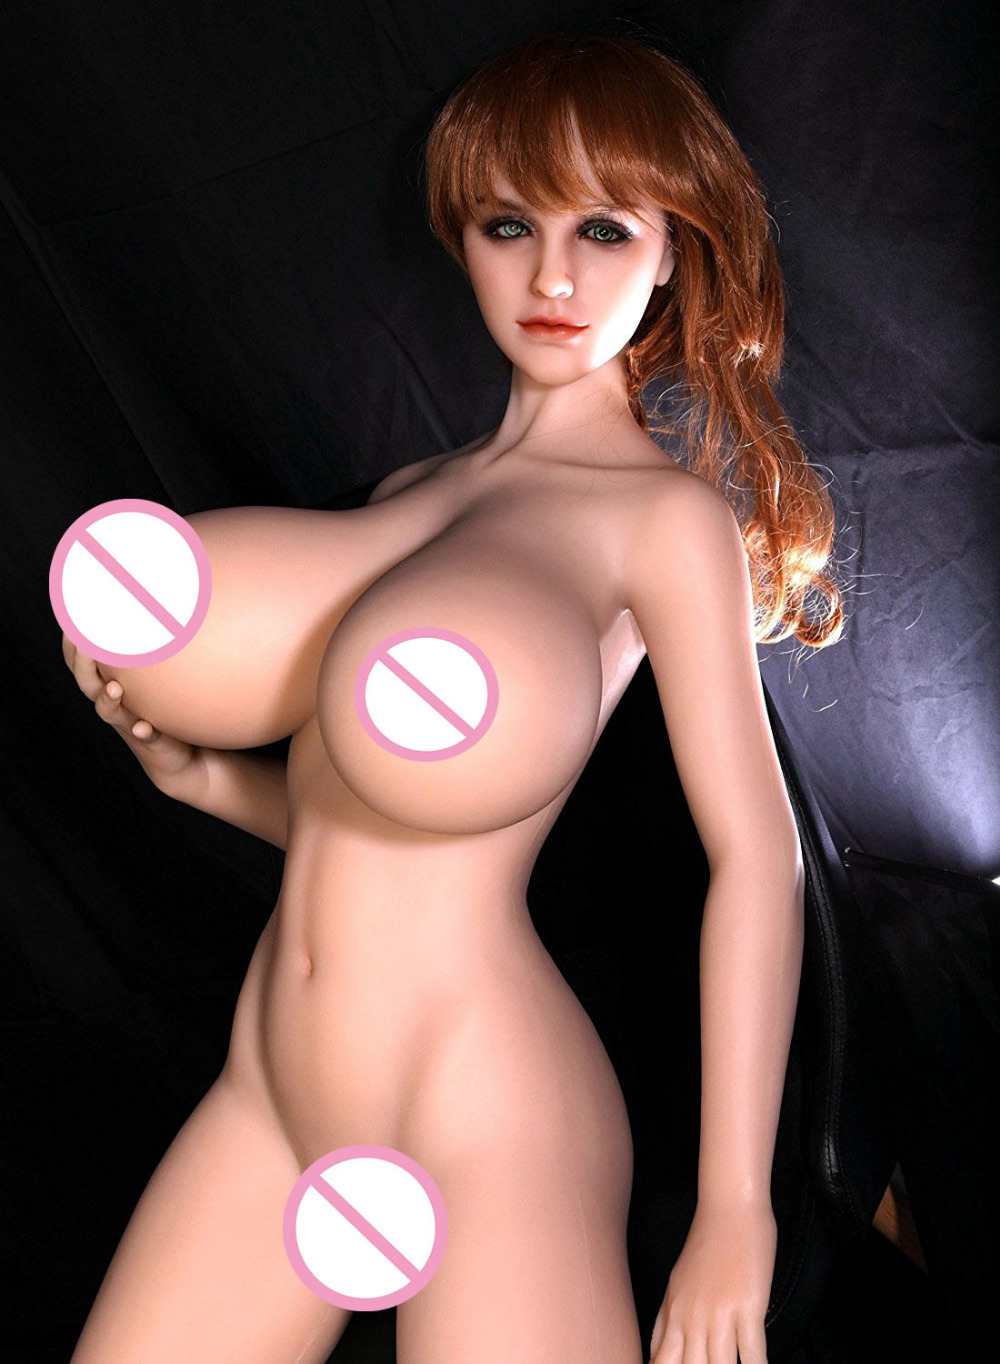 100-real-silicone-sex-dolls-high-quality-165cm-realistic-robot-love-doll-big-breast-oral-vagina-adult-full-life-sexy-anime-doll